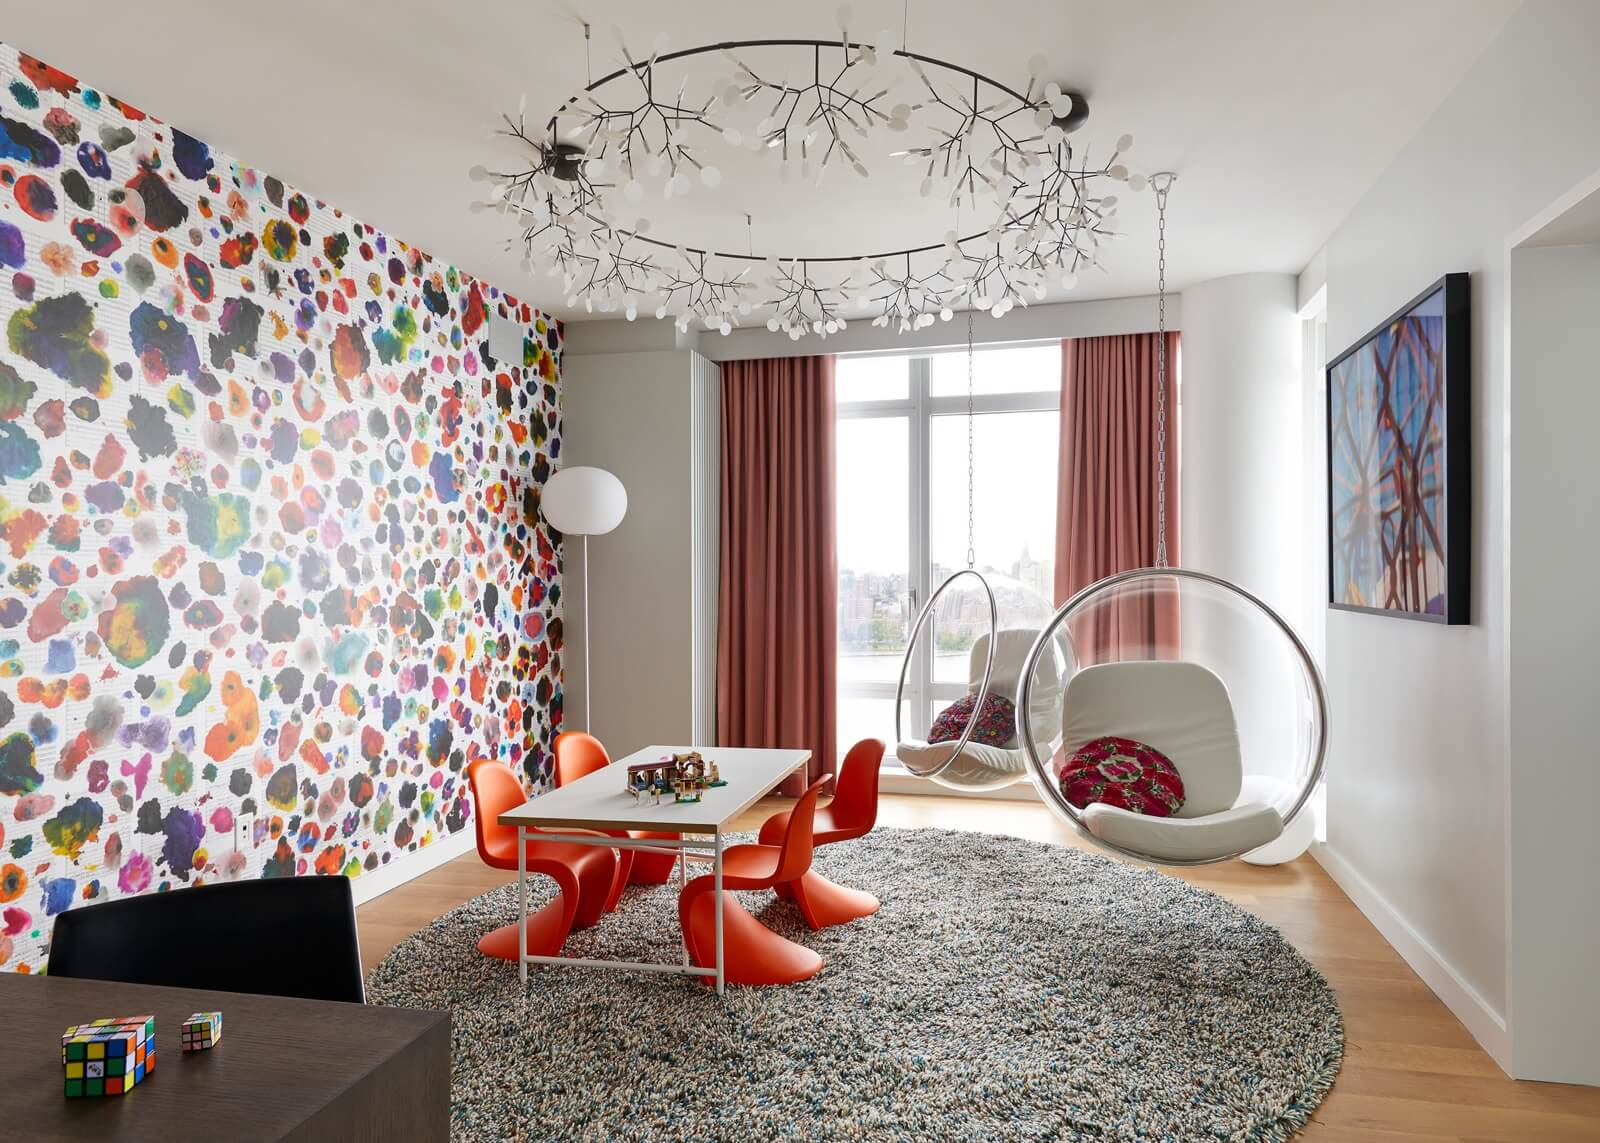 Wallpaper Design Ideas 2020 to Make Interior Elegant. Great idea with orange chairs and colorful impression on the wall